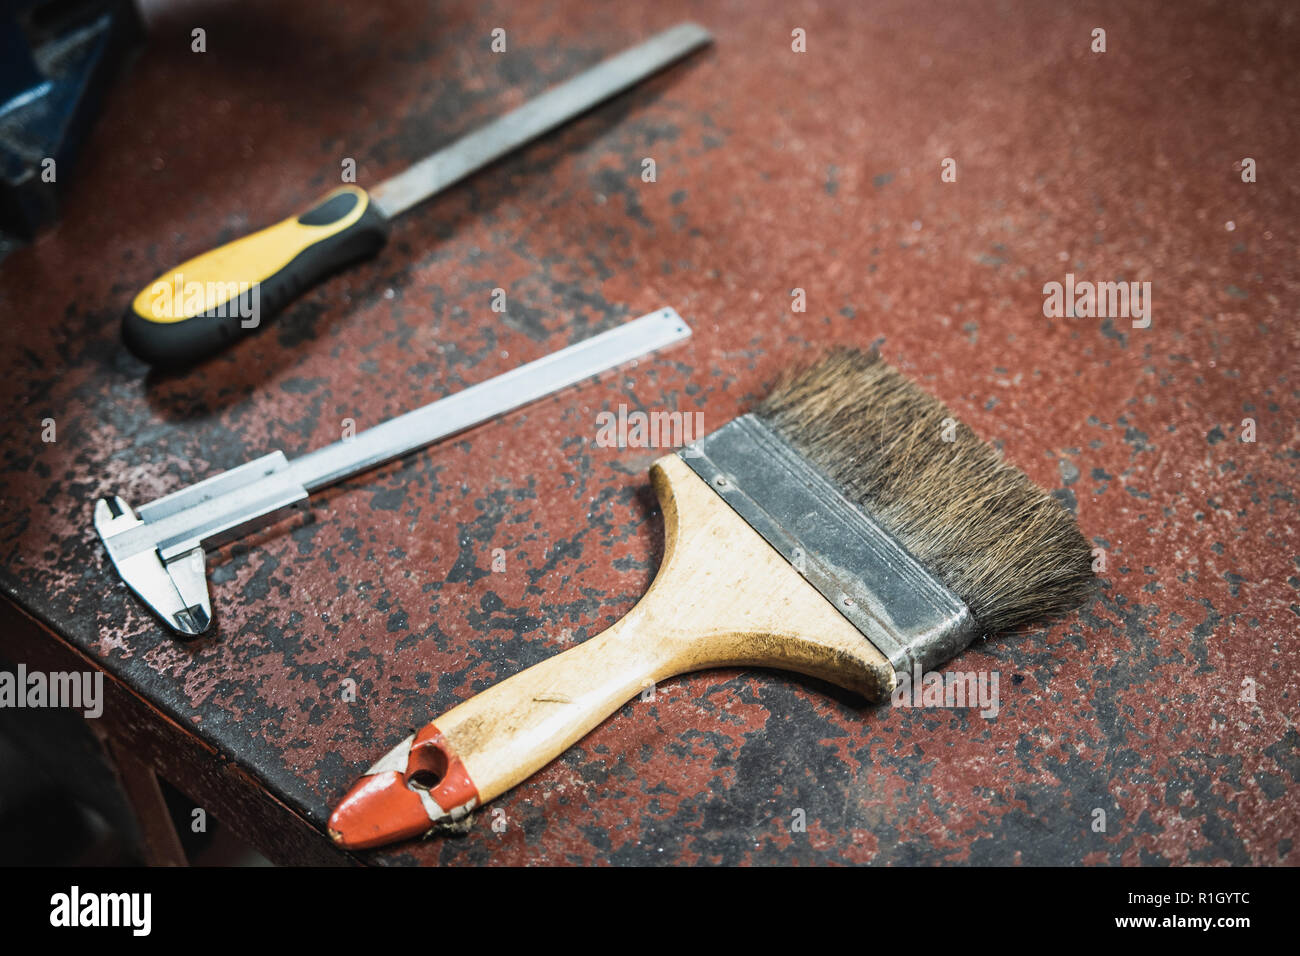 Paint brush, Vernier Caliper, and Metal file on old metallic workshop bench painted in red color - Stock Image